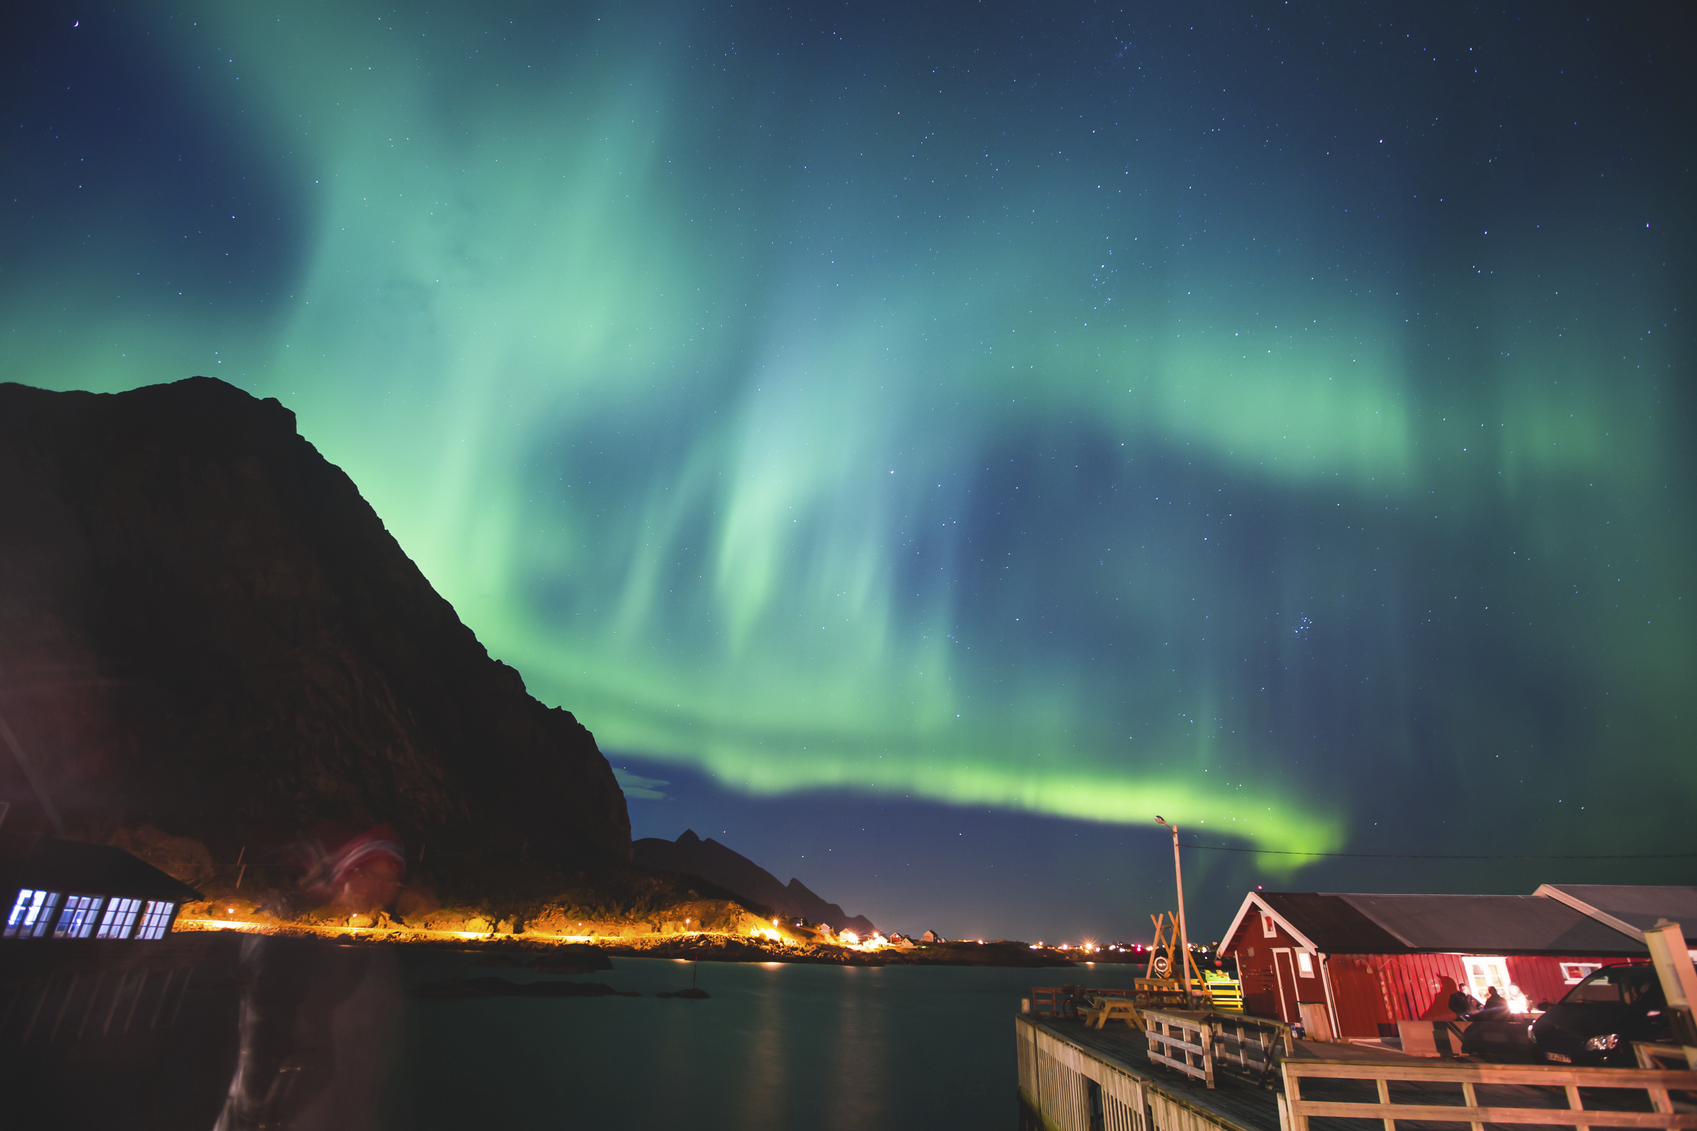 Beautiful picture of massive multicoloured vibrant Aurora Borealis, Aurora Polaris, Polar Light, also know as Northern Lights in the night sky over Norway, Lofoten Islands